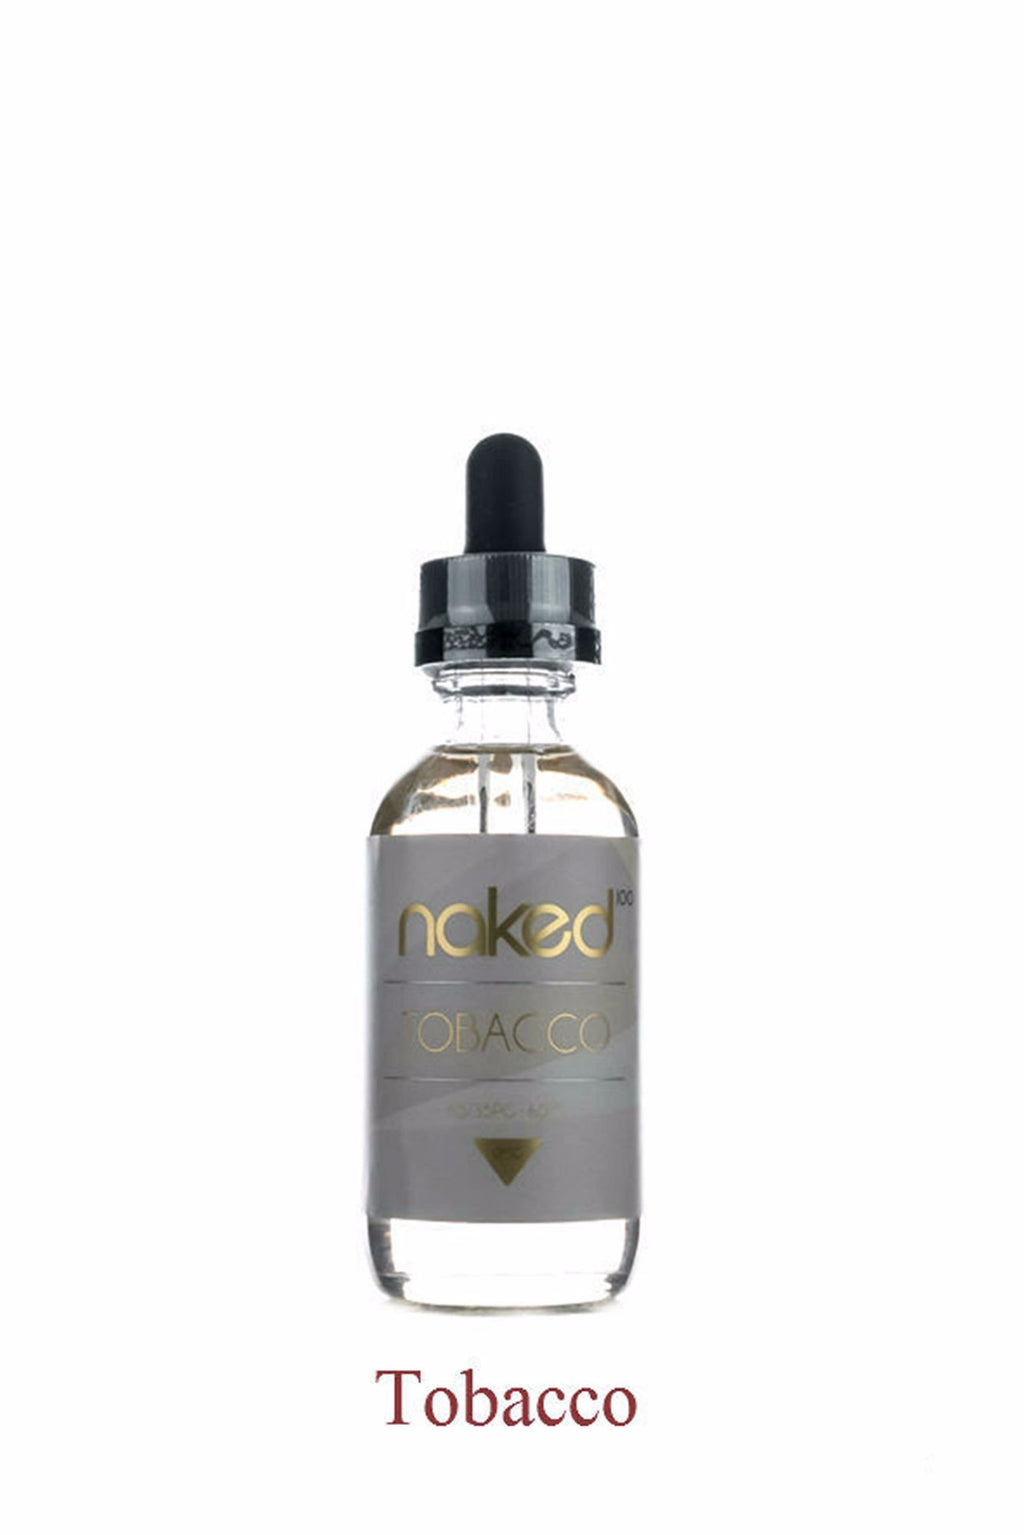 Naked 100 - Euro Gold 60mL